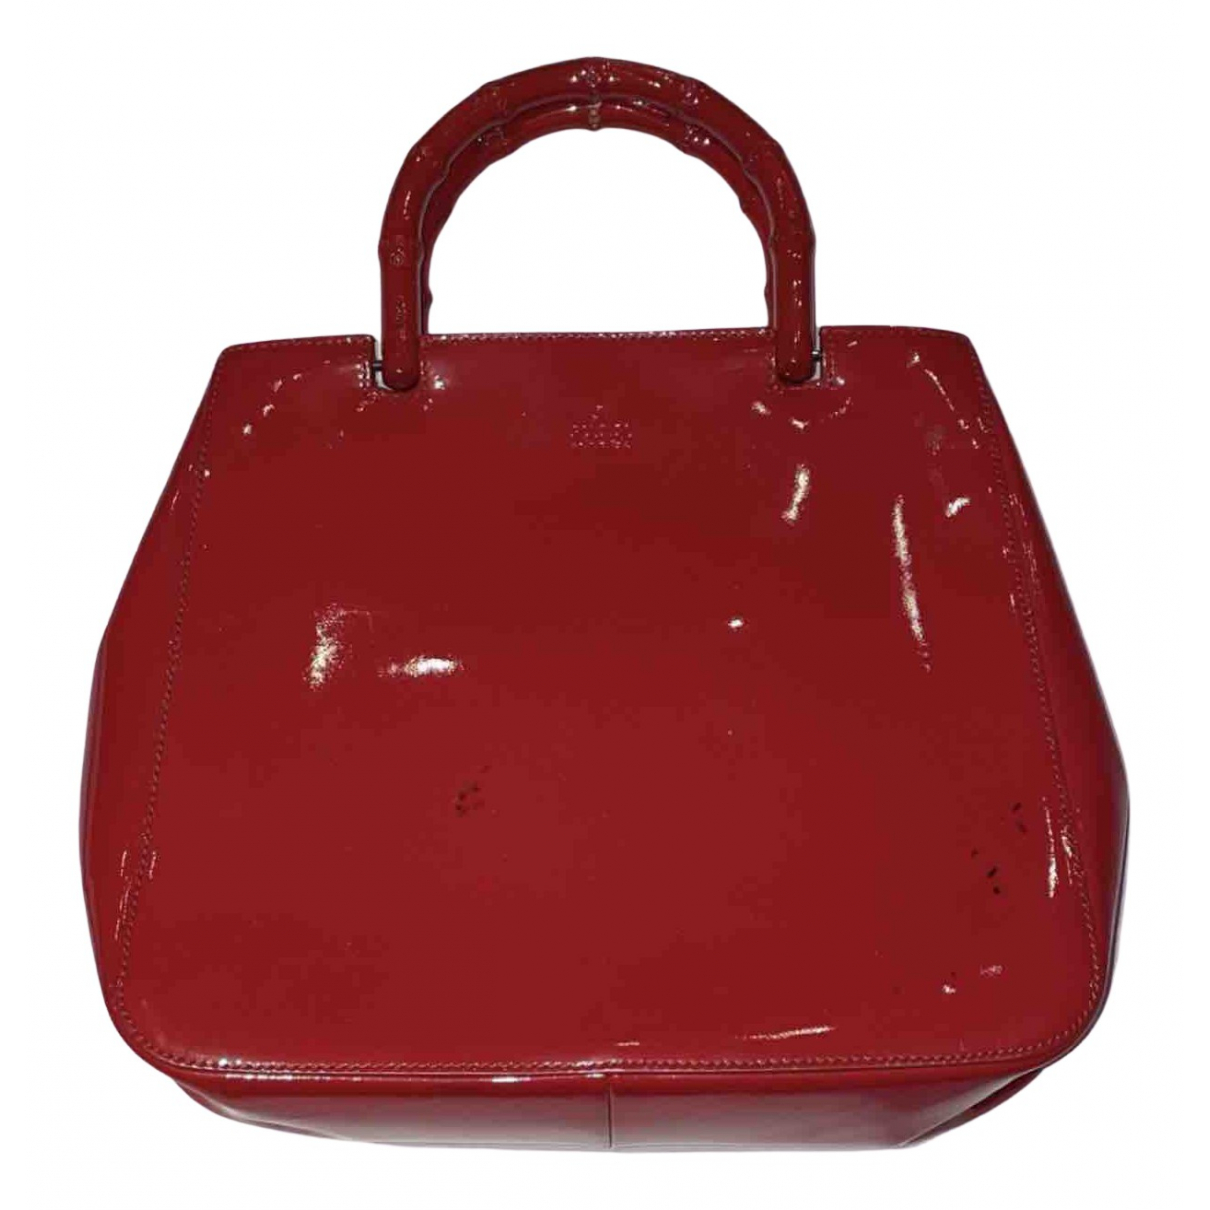 Gucci - Sac a main Bamboo pour femme - rouge